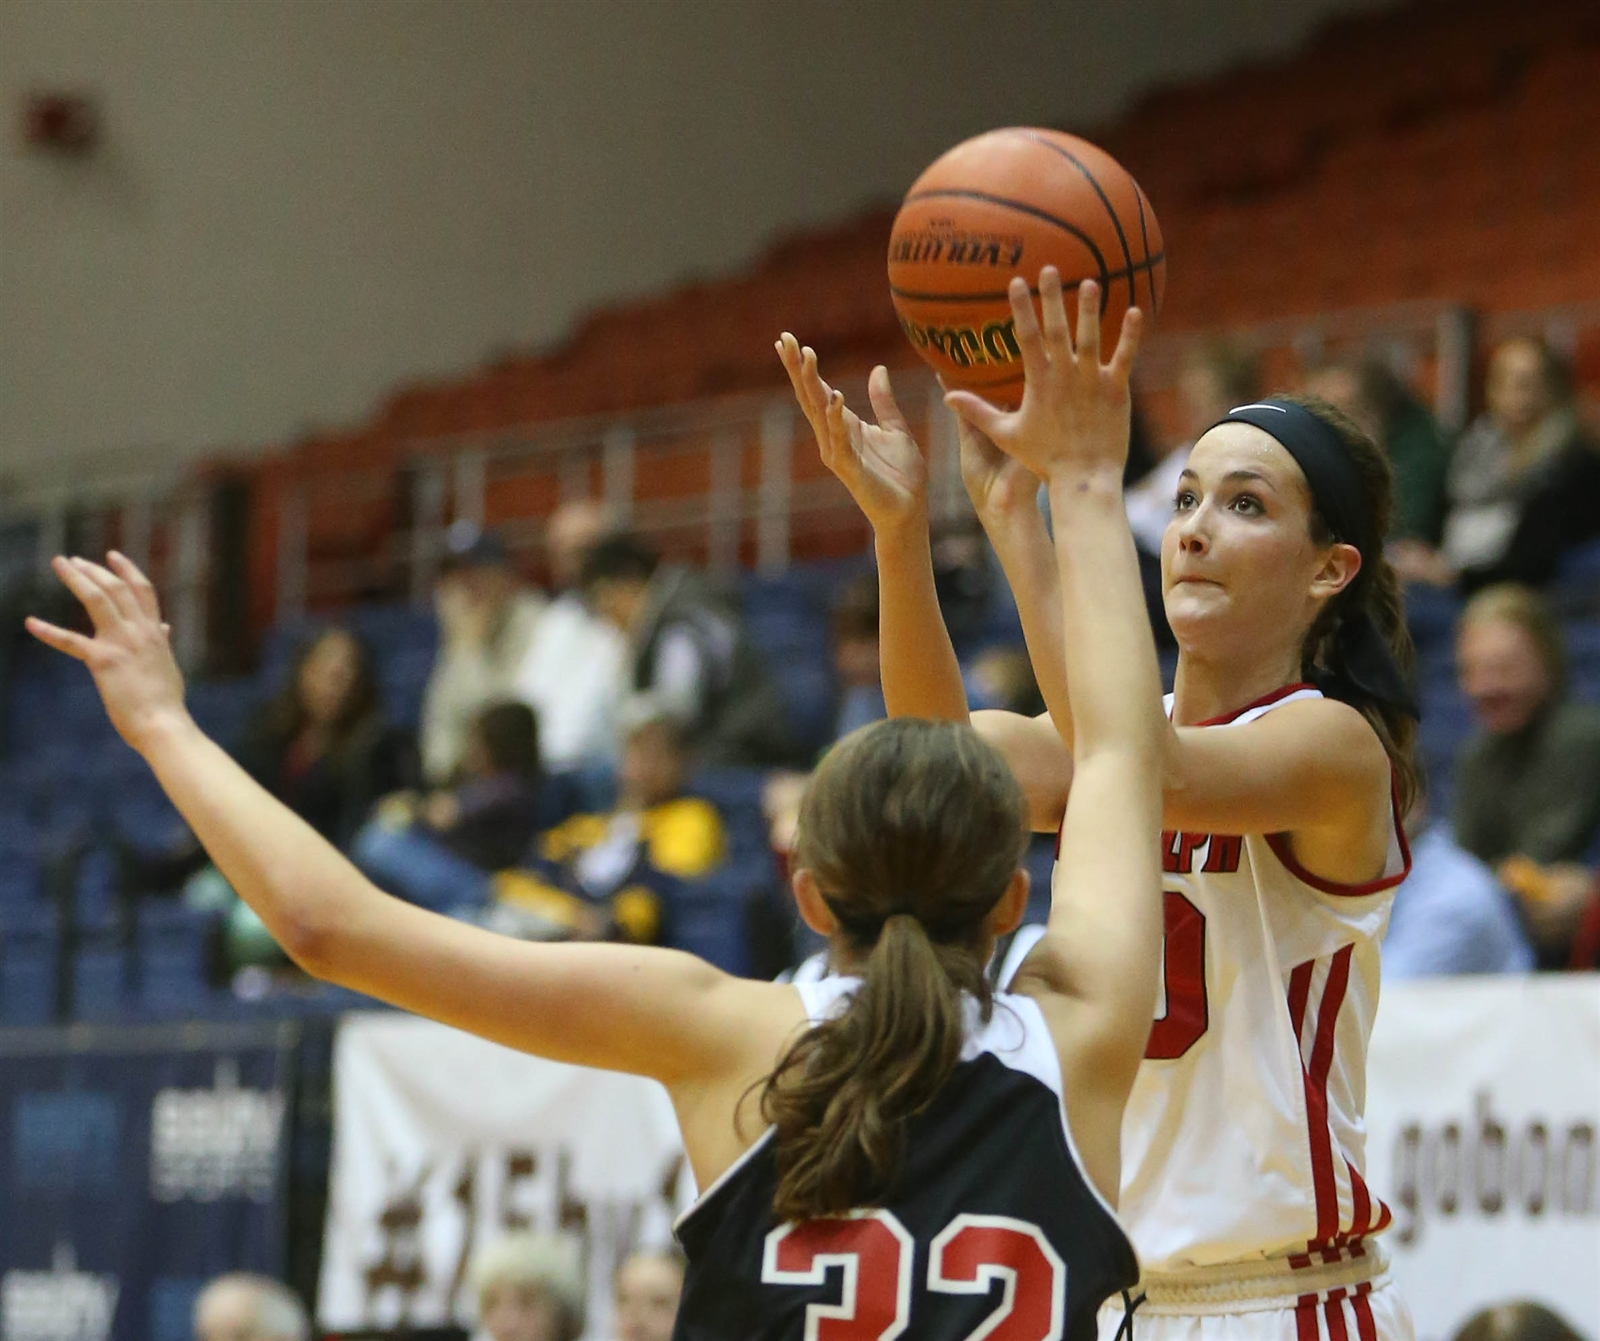 Randolph's Mckenna Maycock is Western New York's all-time scoring leader for basketball. (Mark Mulville/Buffalo News)